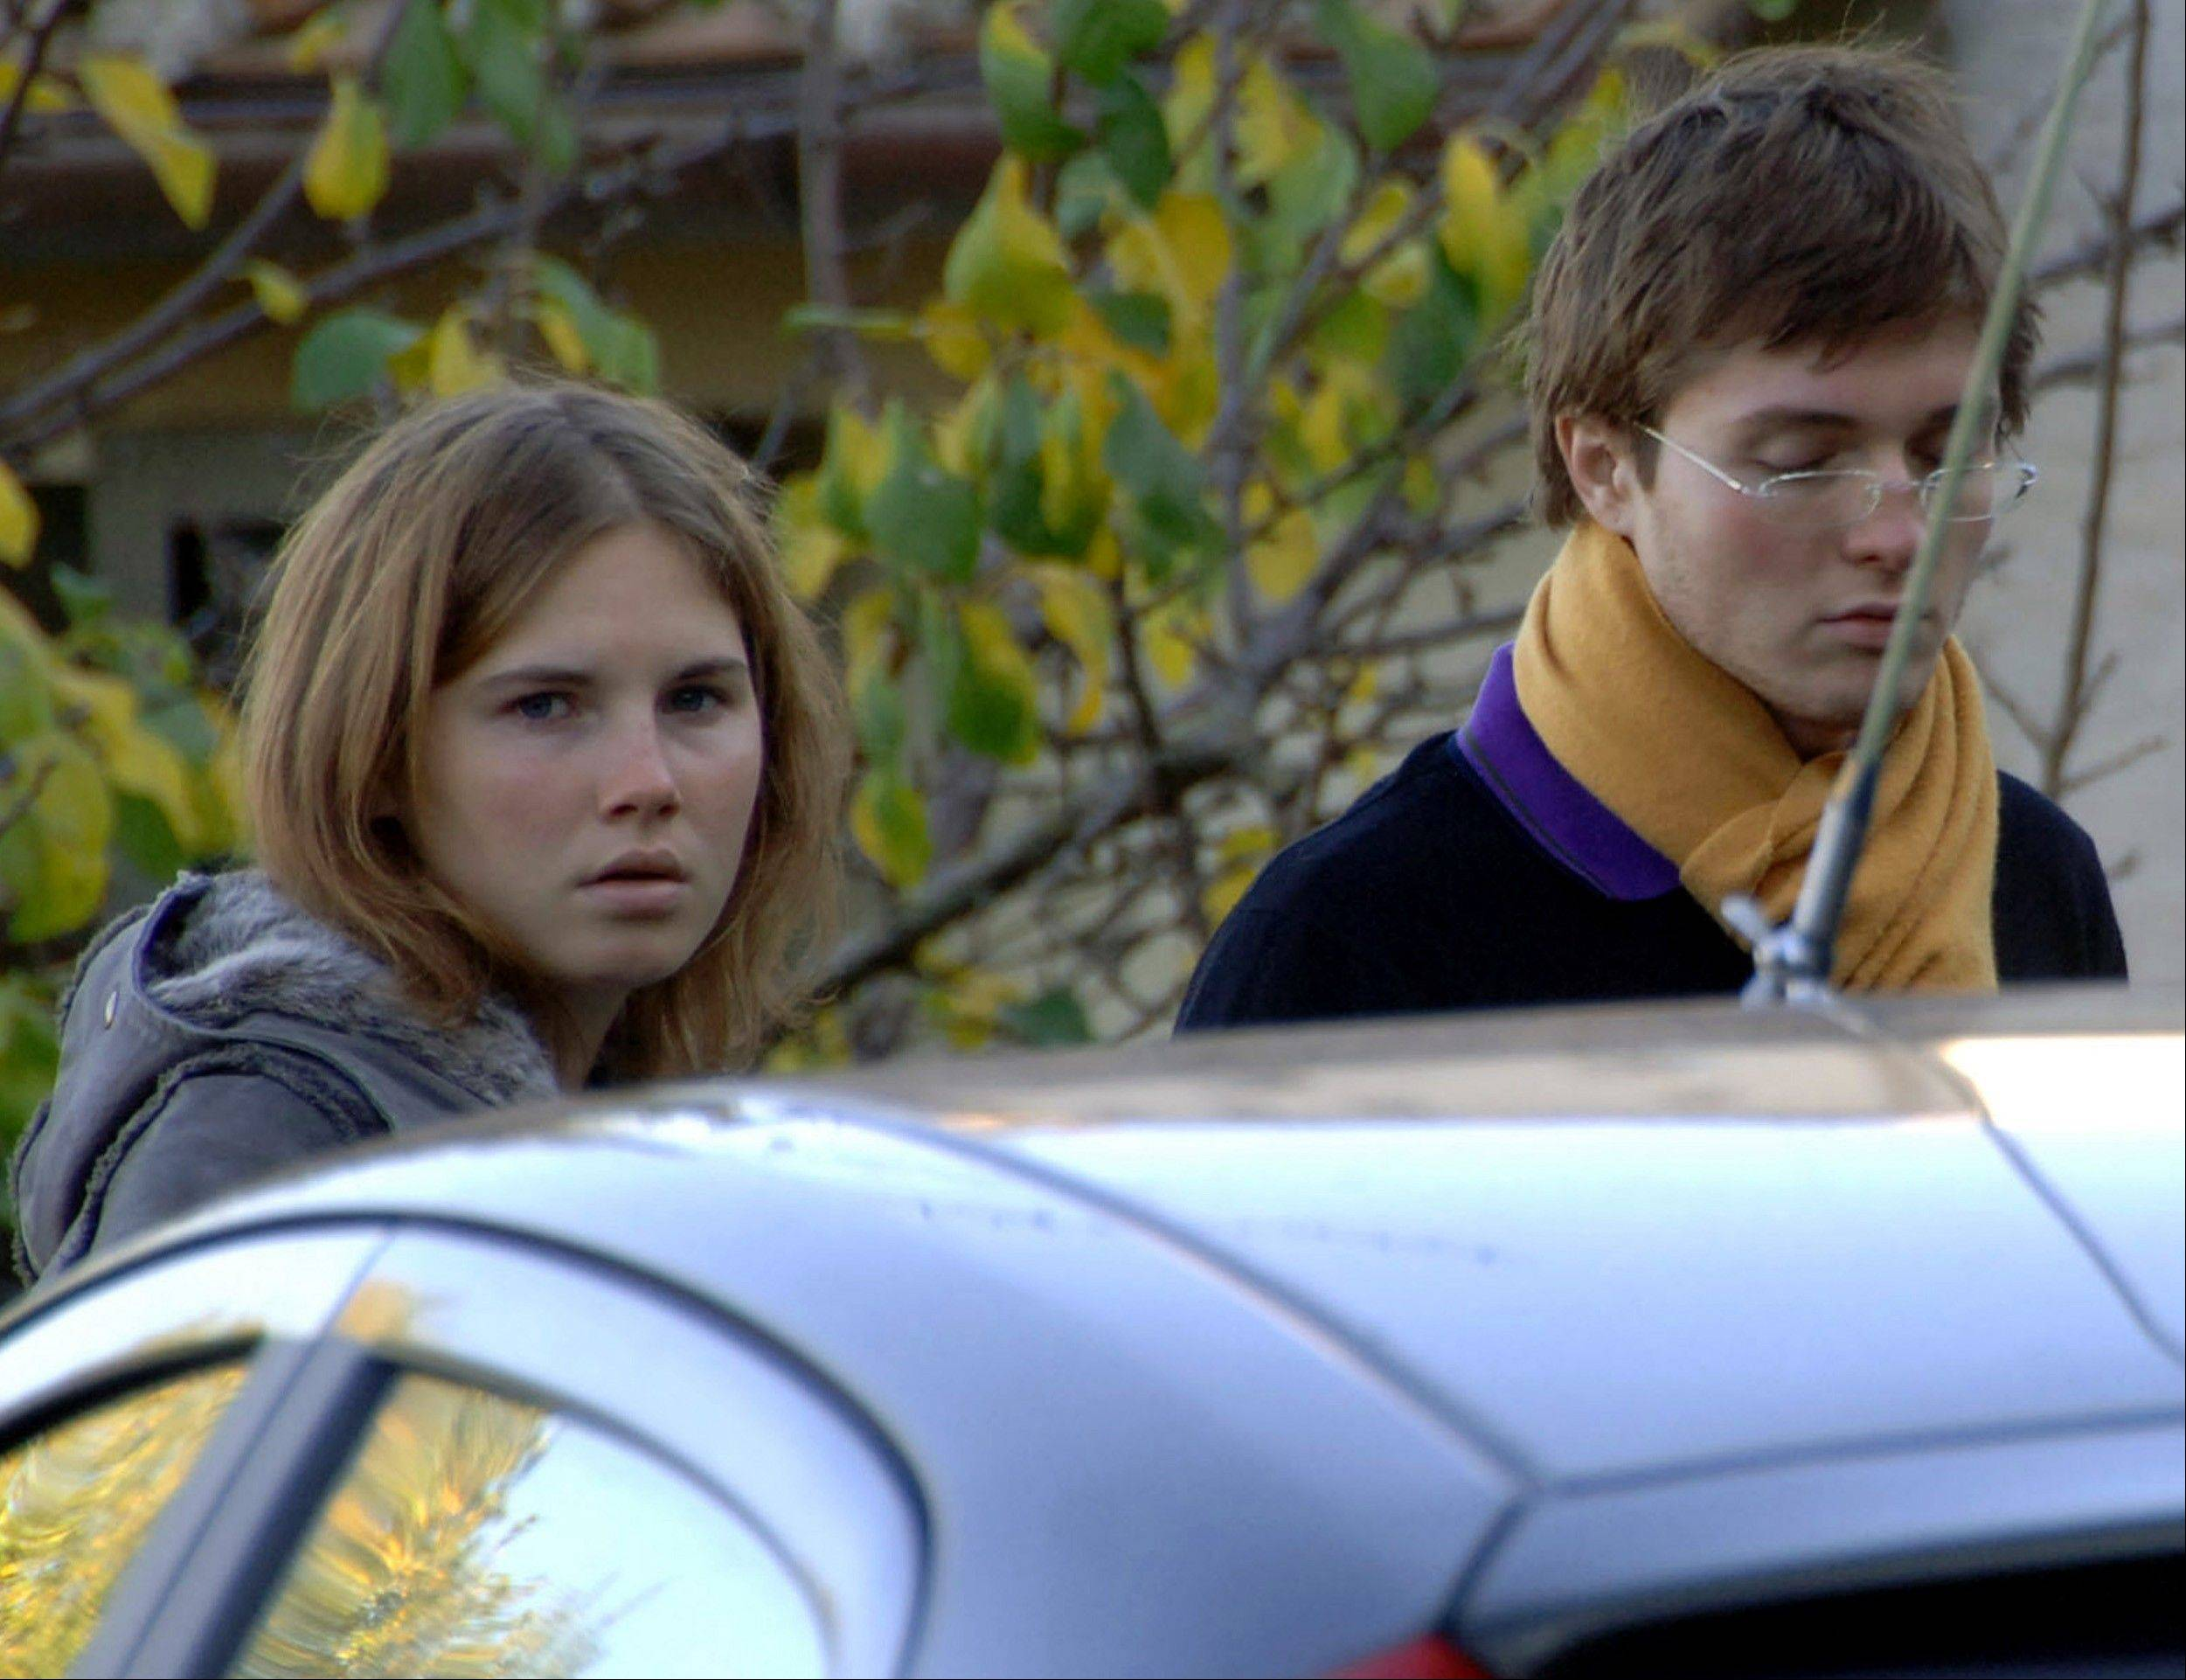 Amanda Knox, left, and Raffaele Sollecito, stand outside the rented house where 21-year-old British student Meredith Kercher was found dead in 2007. The state�s prosecutor is arguing his case that an appeals court should reinstate the guilty verdict against U.S. exchange student Amanda Knox for the grisly 2007 murder of her roommate.